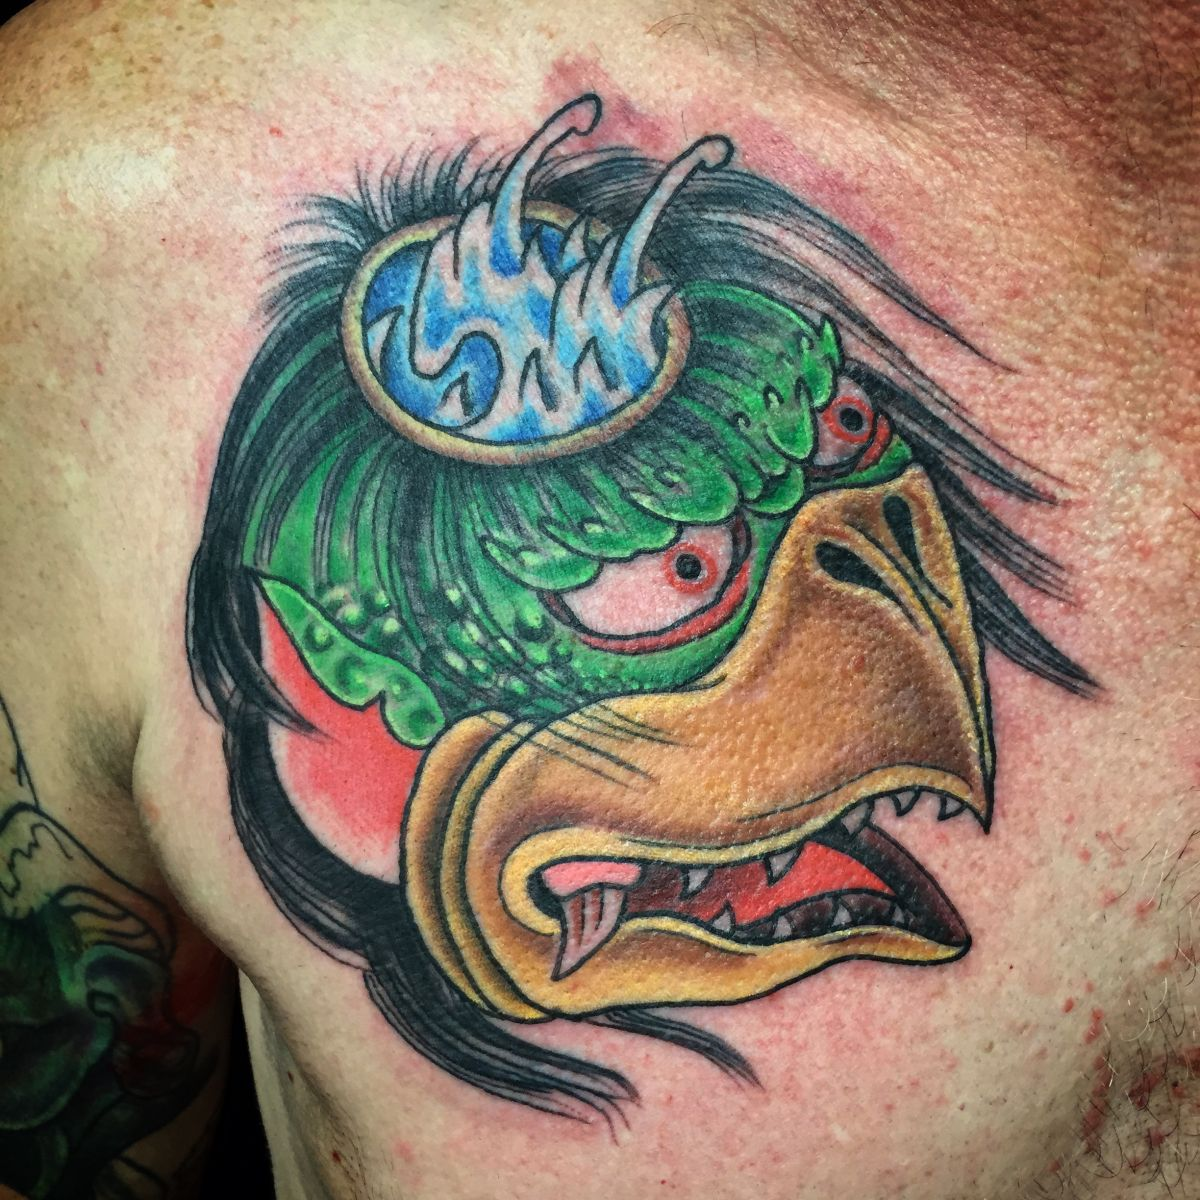 Kappa Tattoo